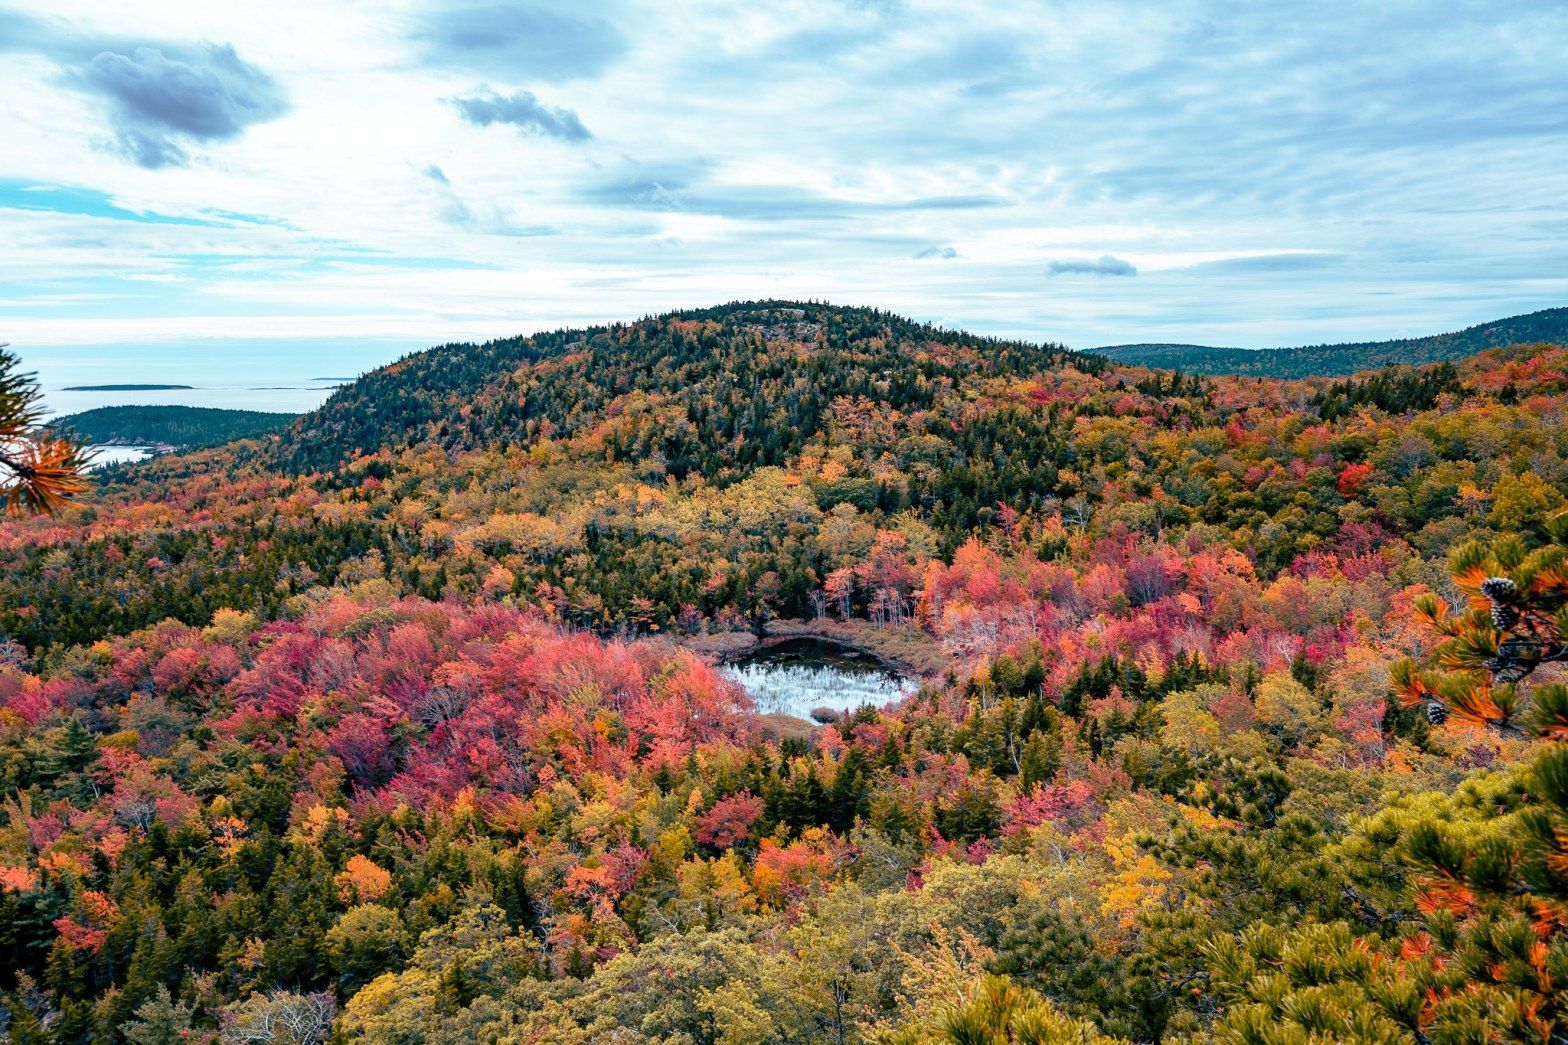 Fall colors of Acadia National Park in October